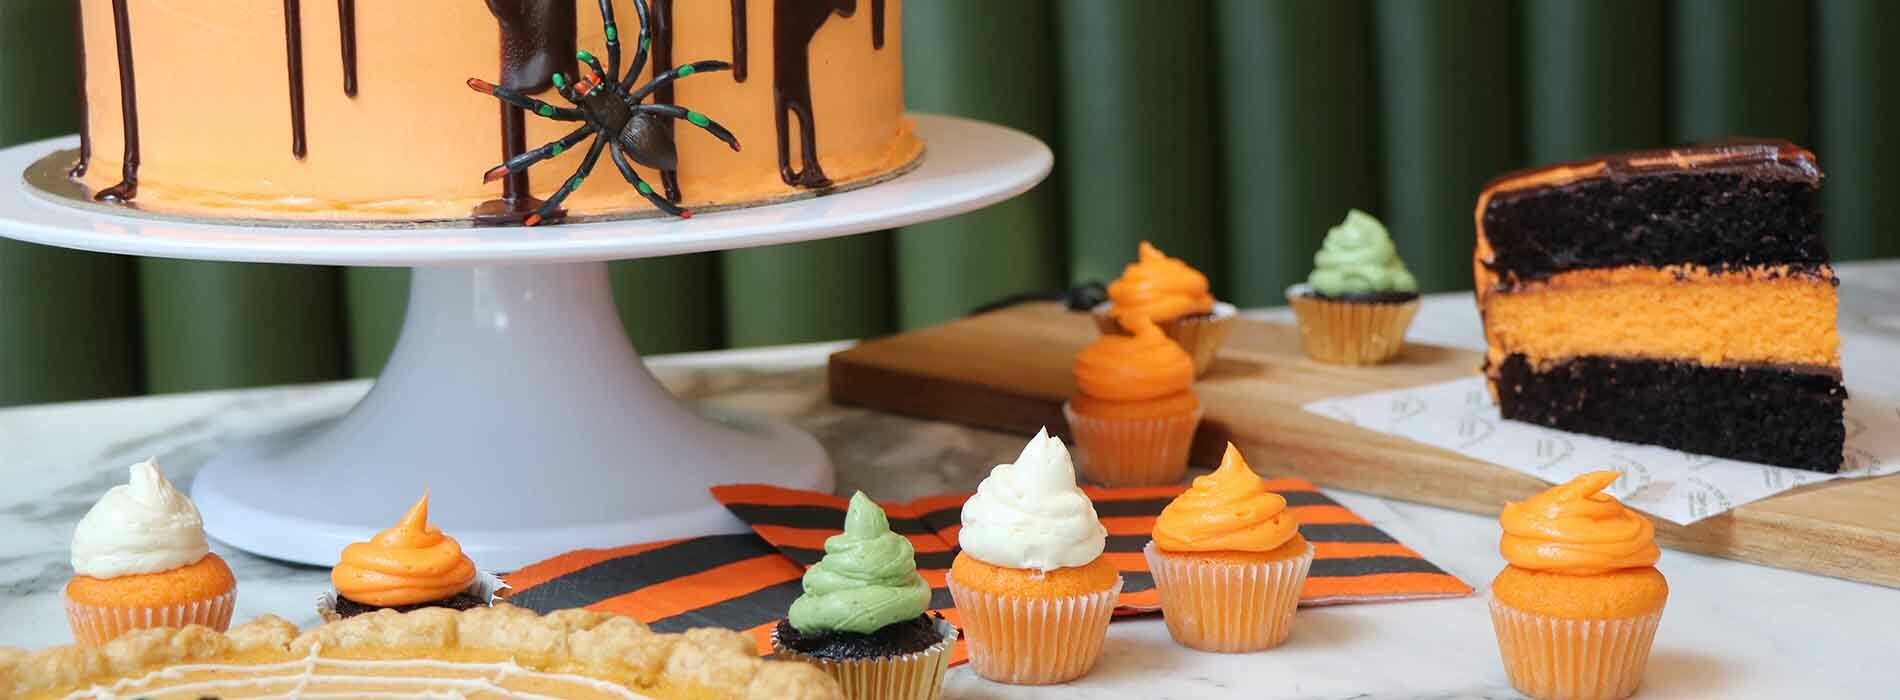 Halloween in Dubai: Where to get your sweet treats this weekend